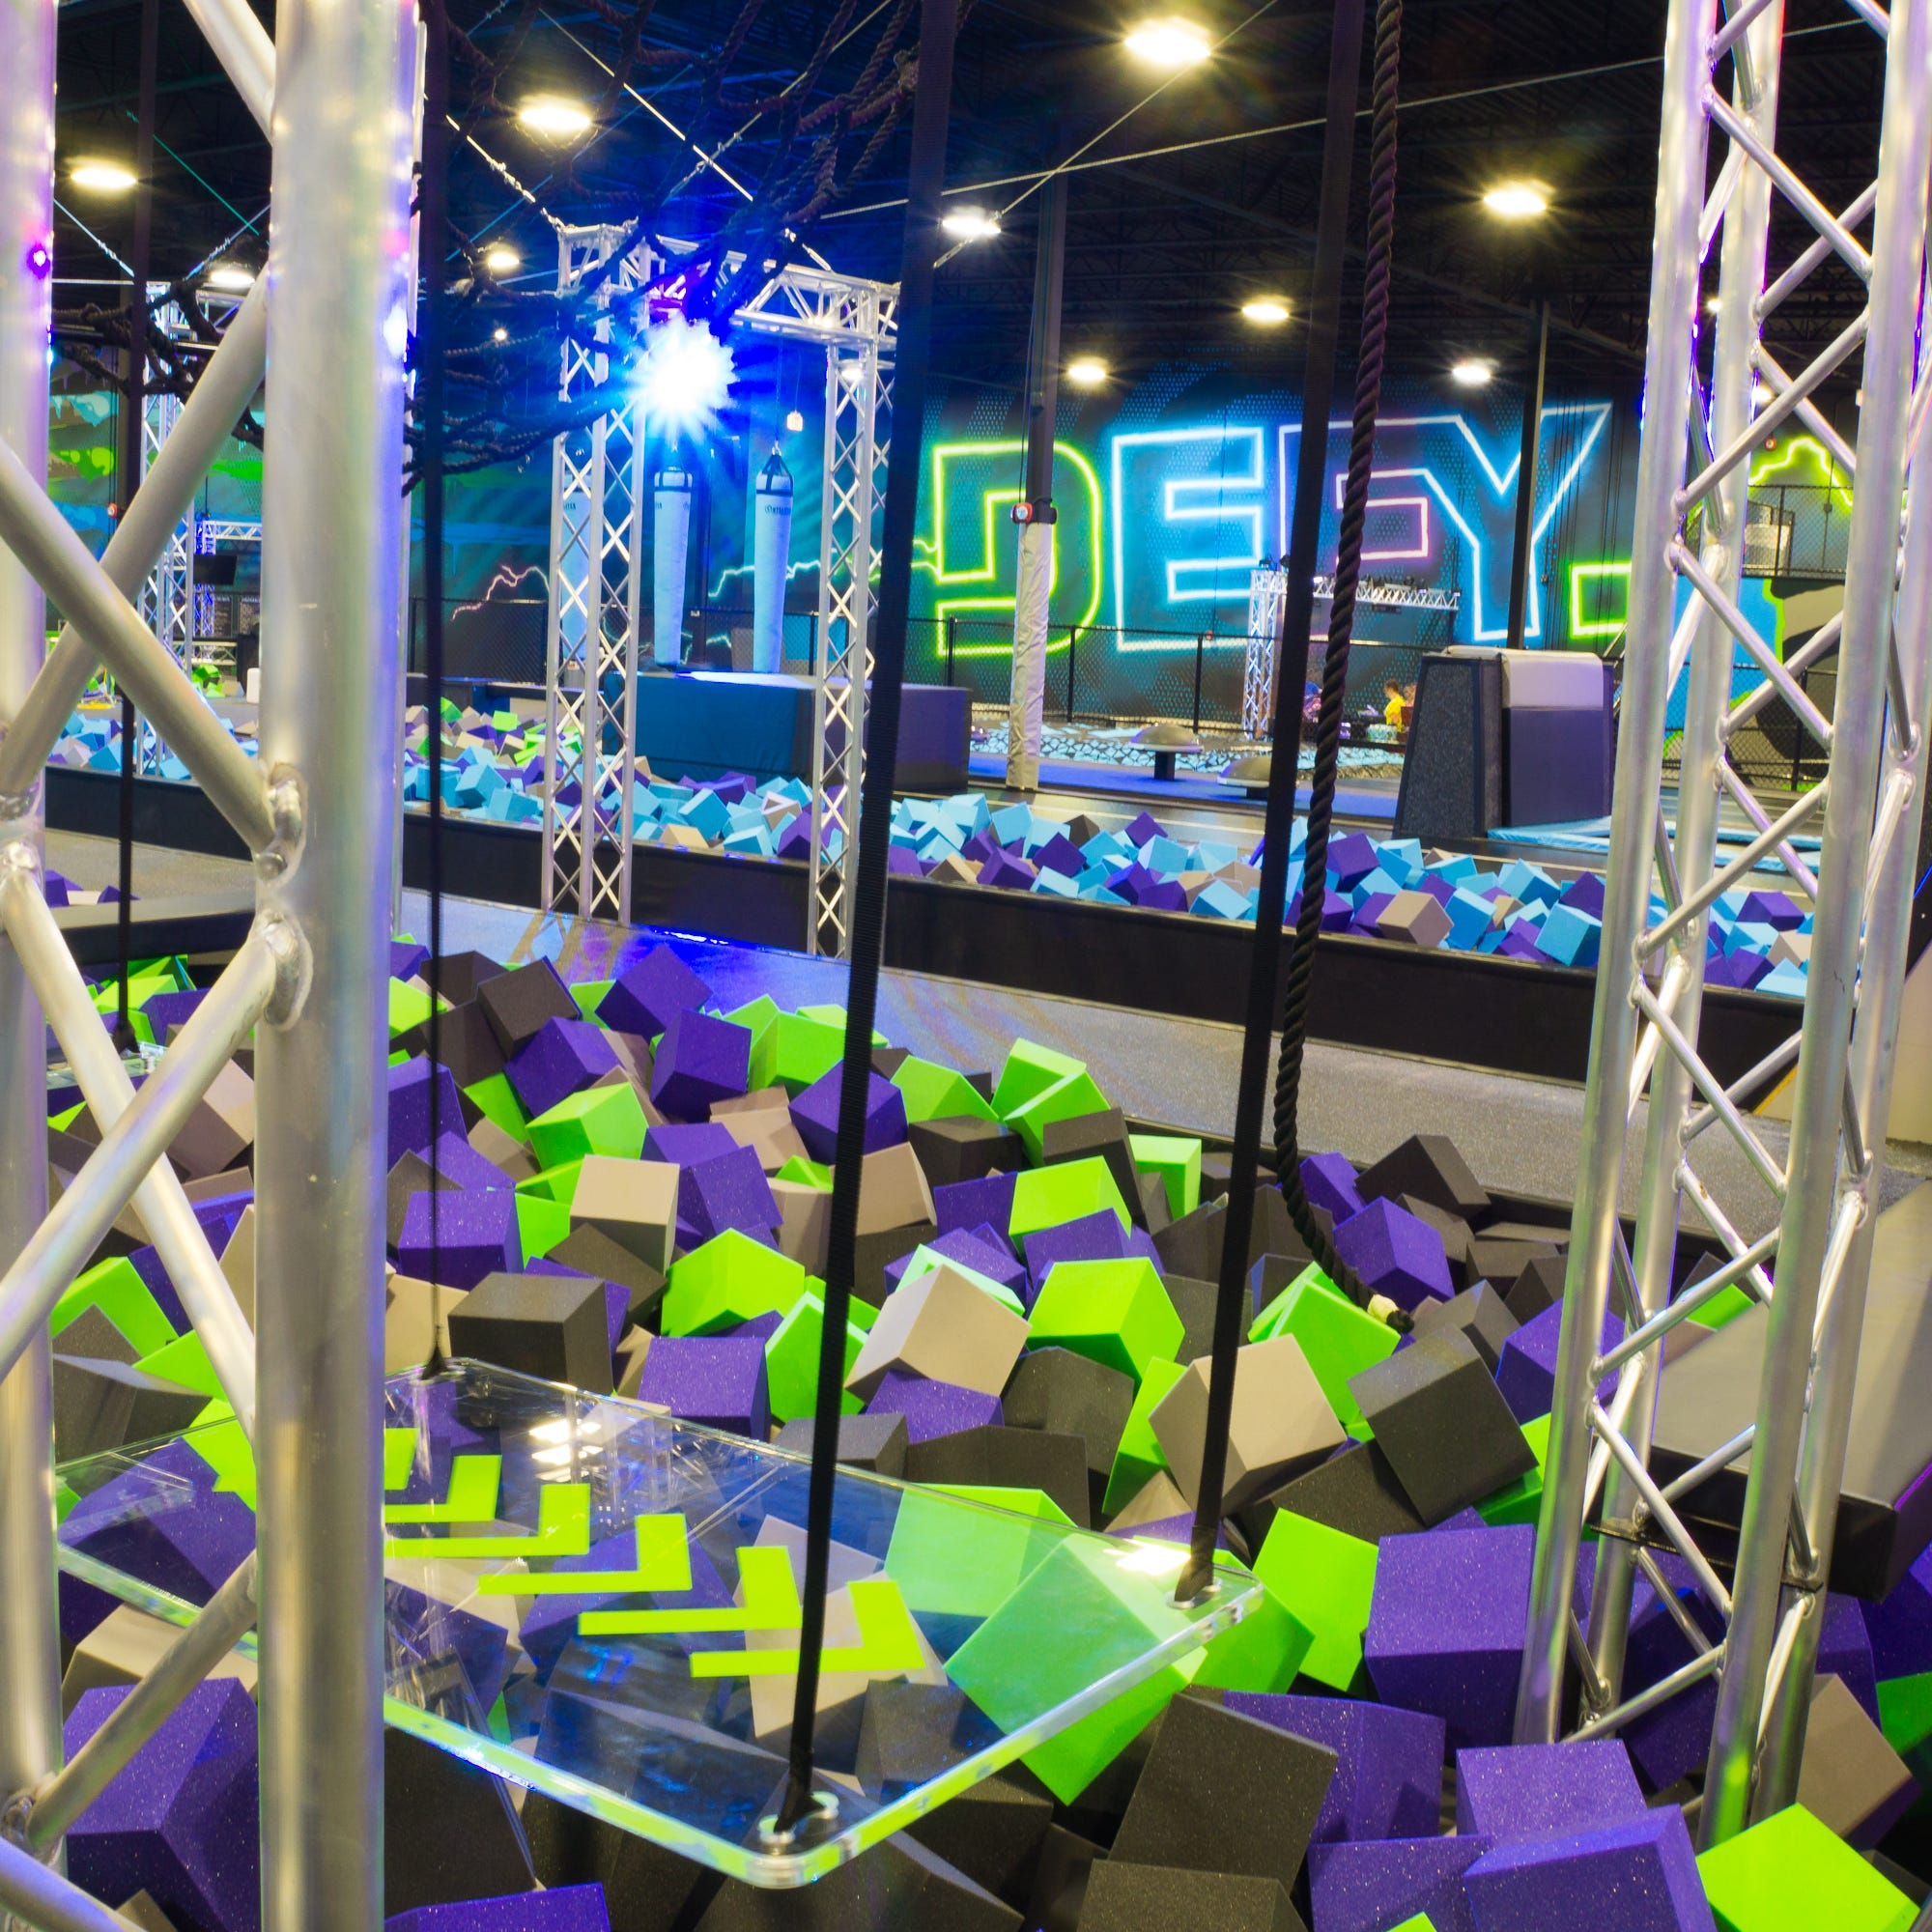 Ninja gym Defy Fort Myers opens at The Forum with Warped Wall, zip line, parkour and more